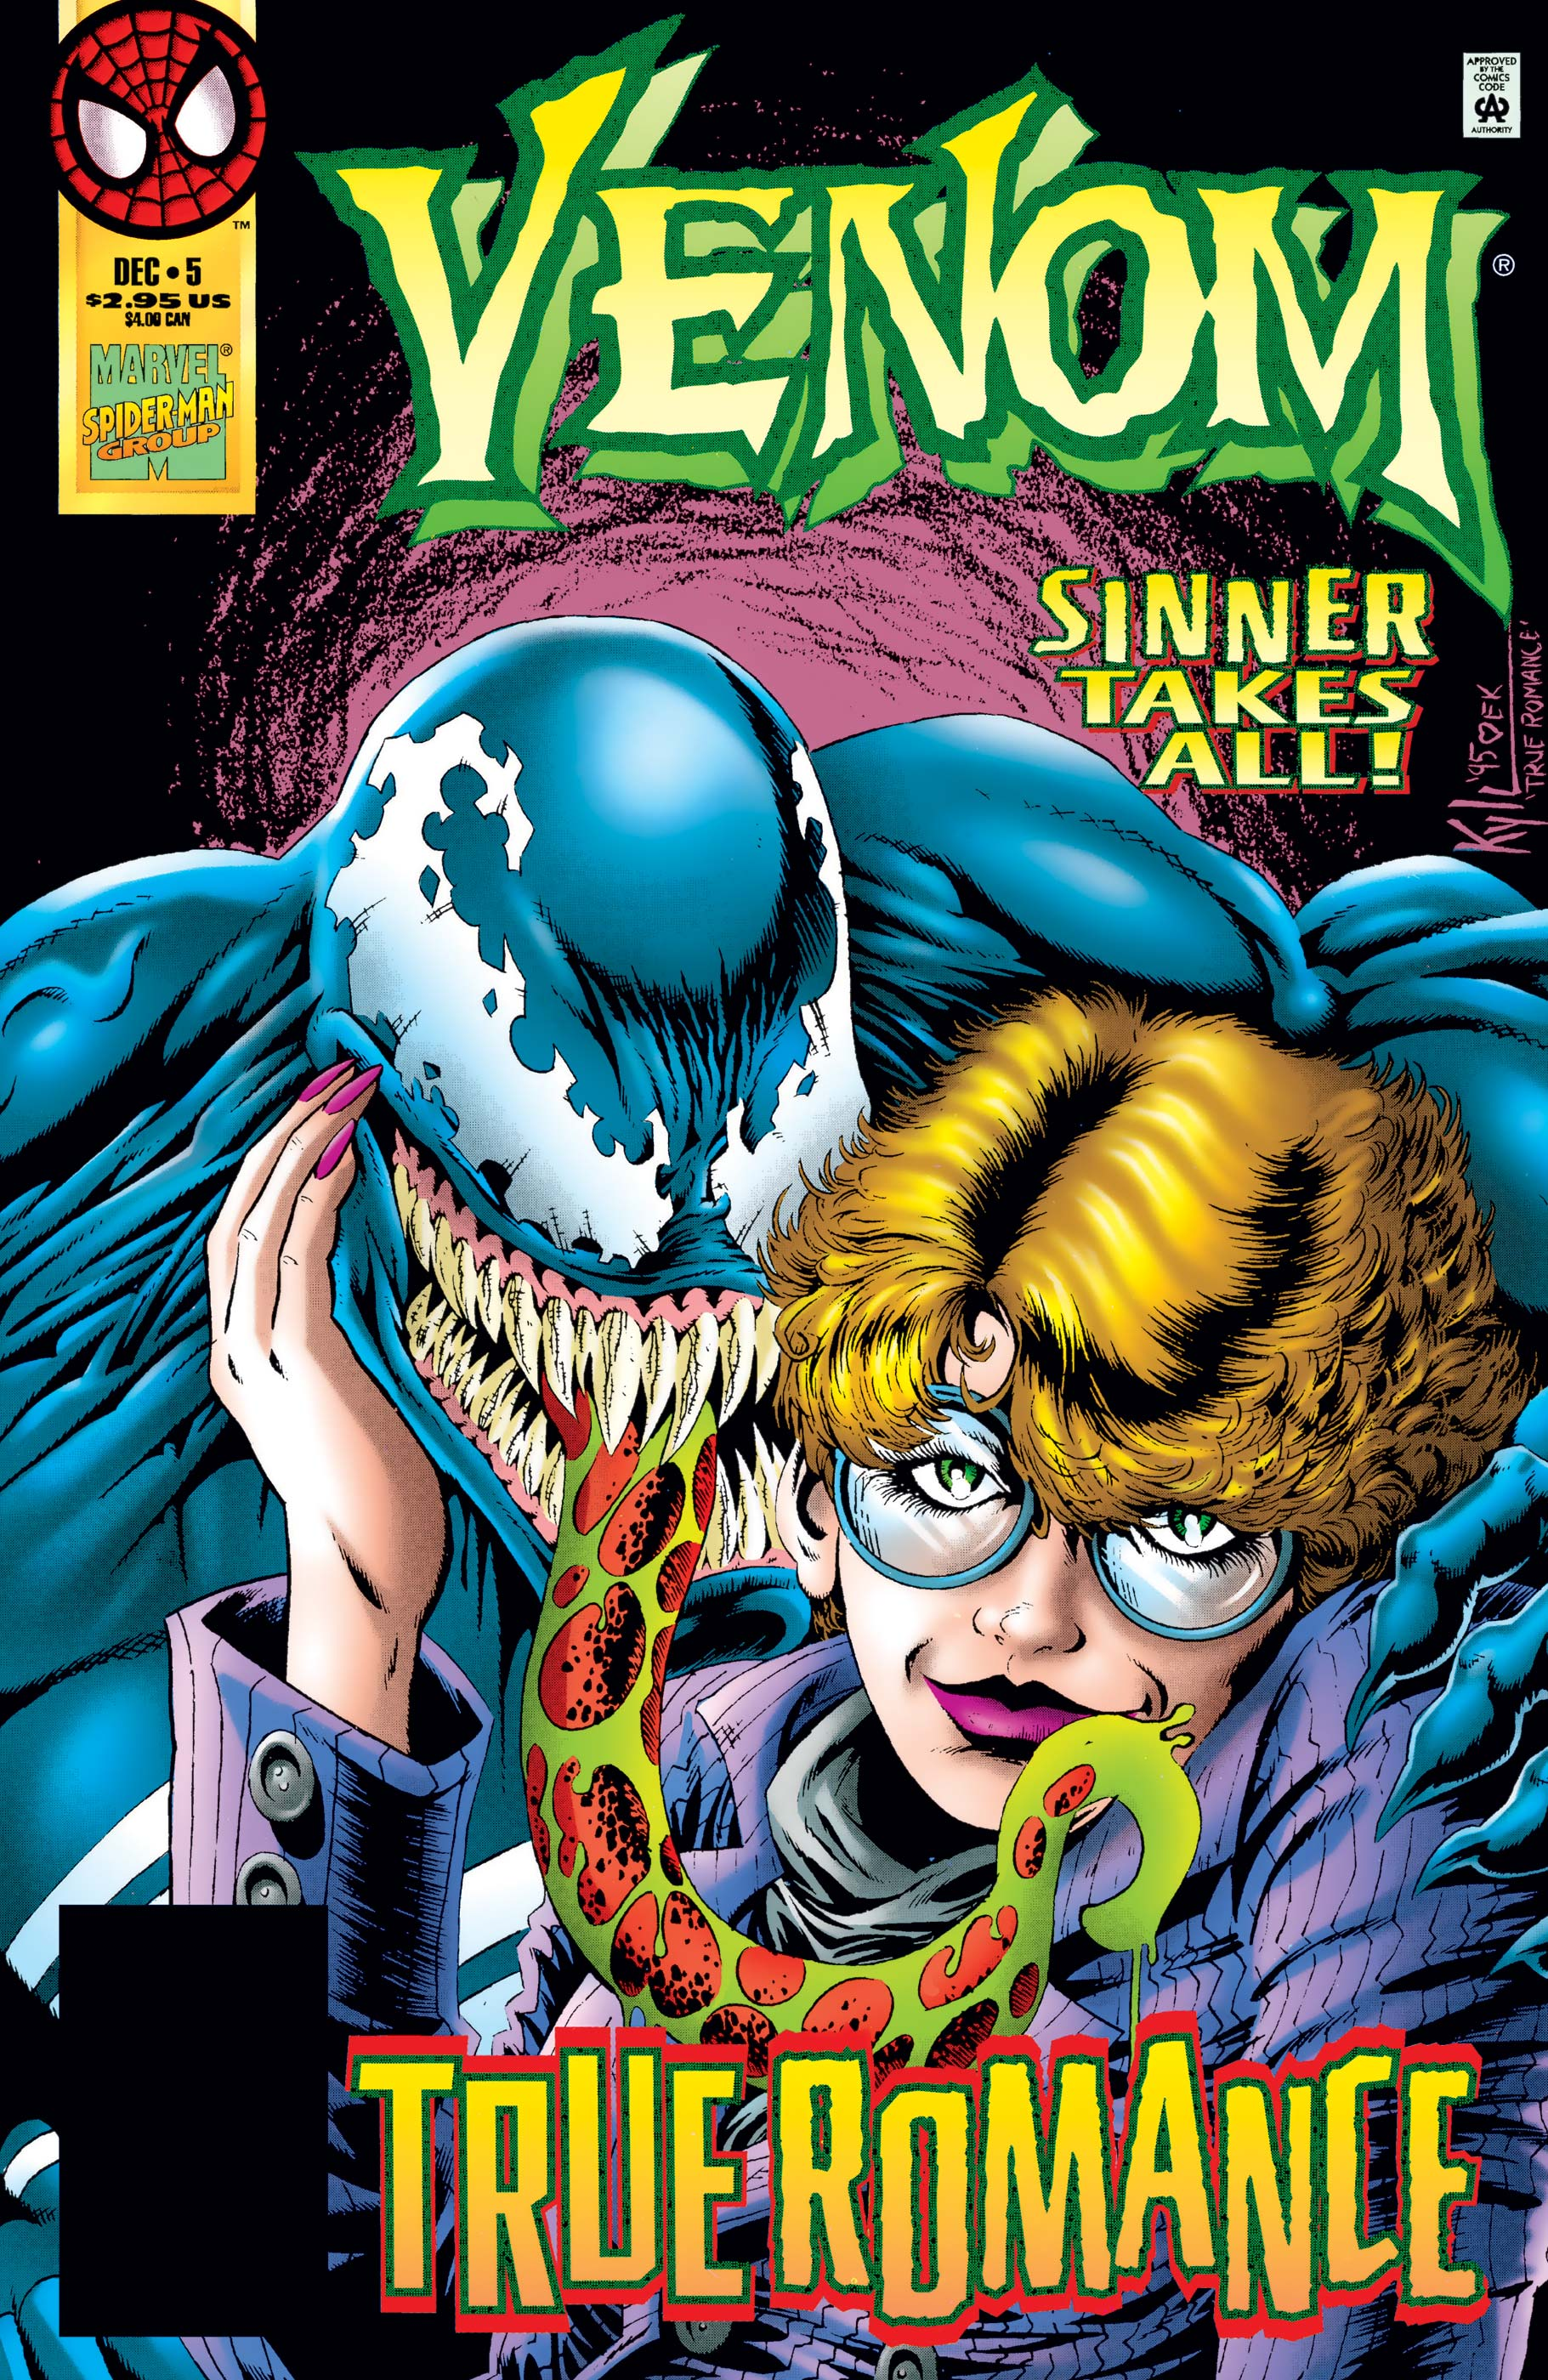 Venom: Sinner Takes All (1995) #5